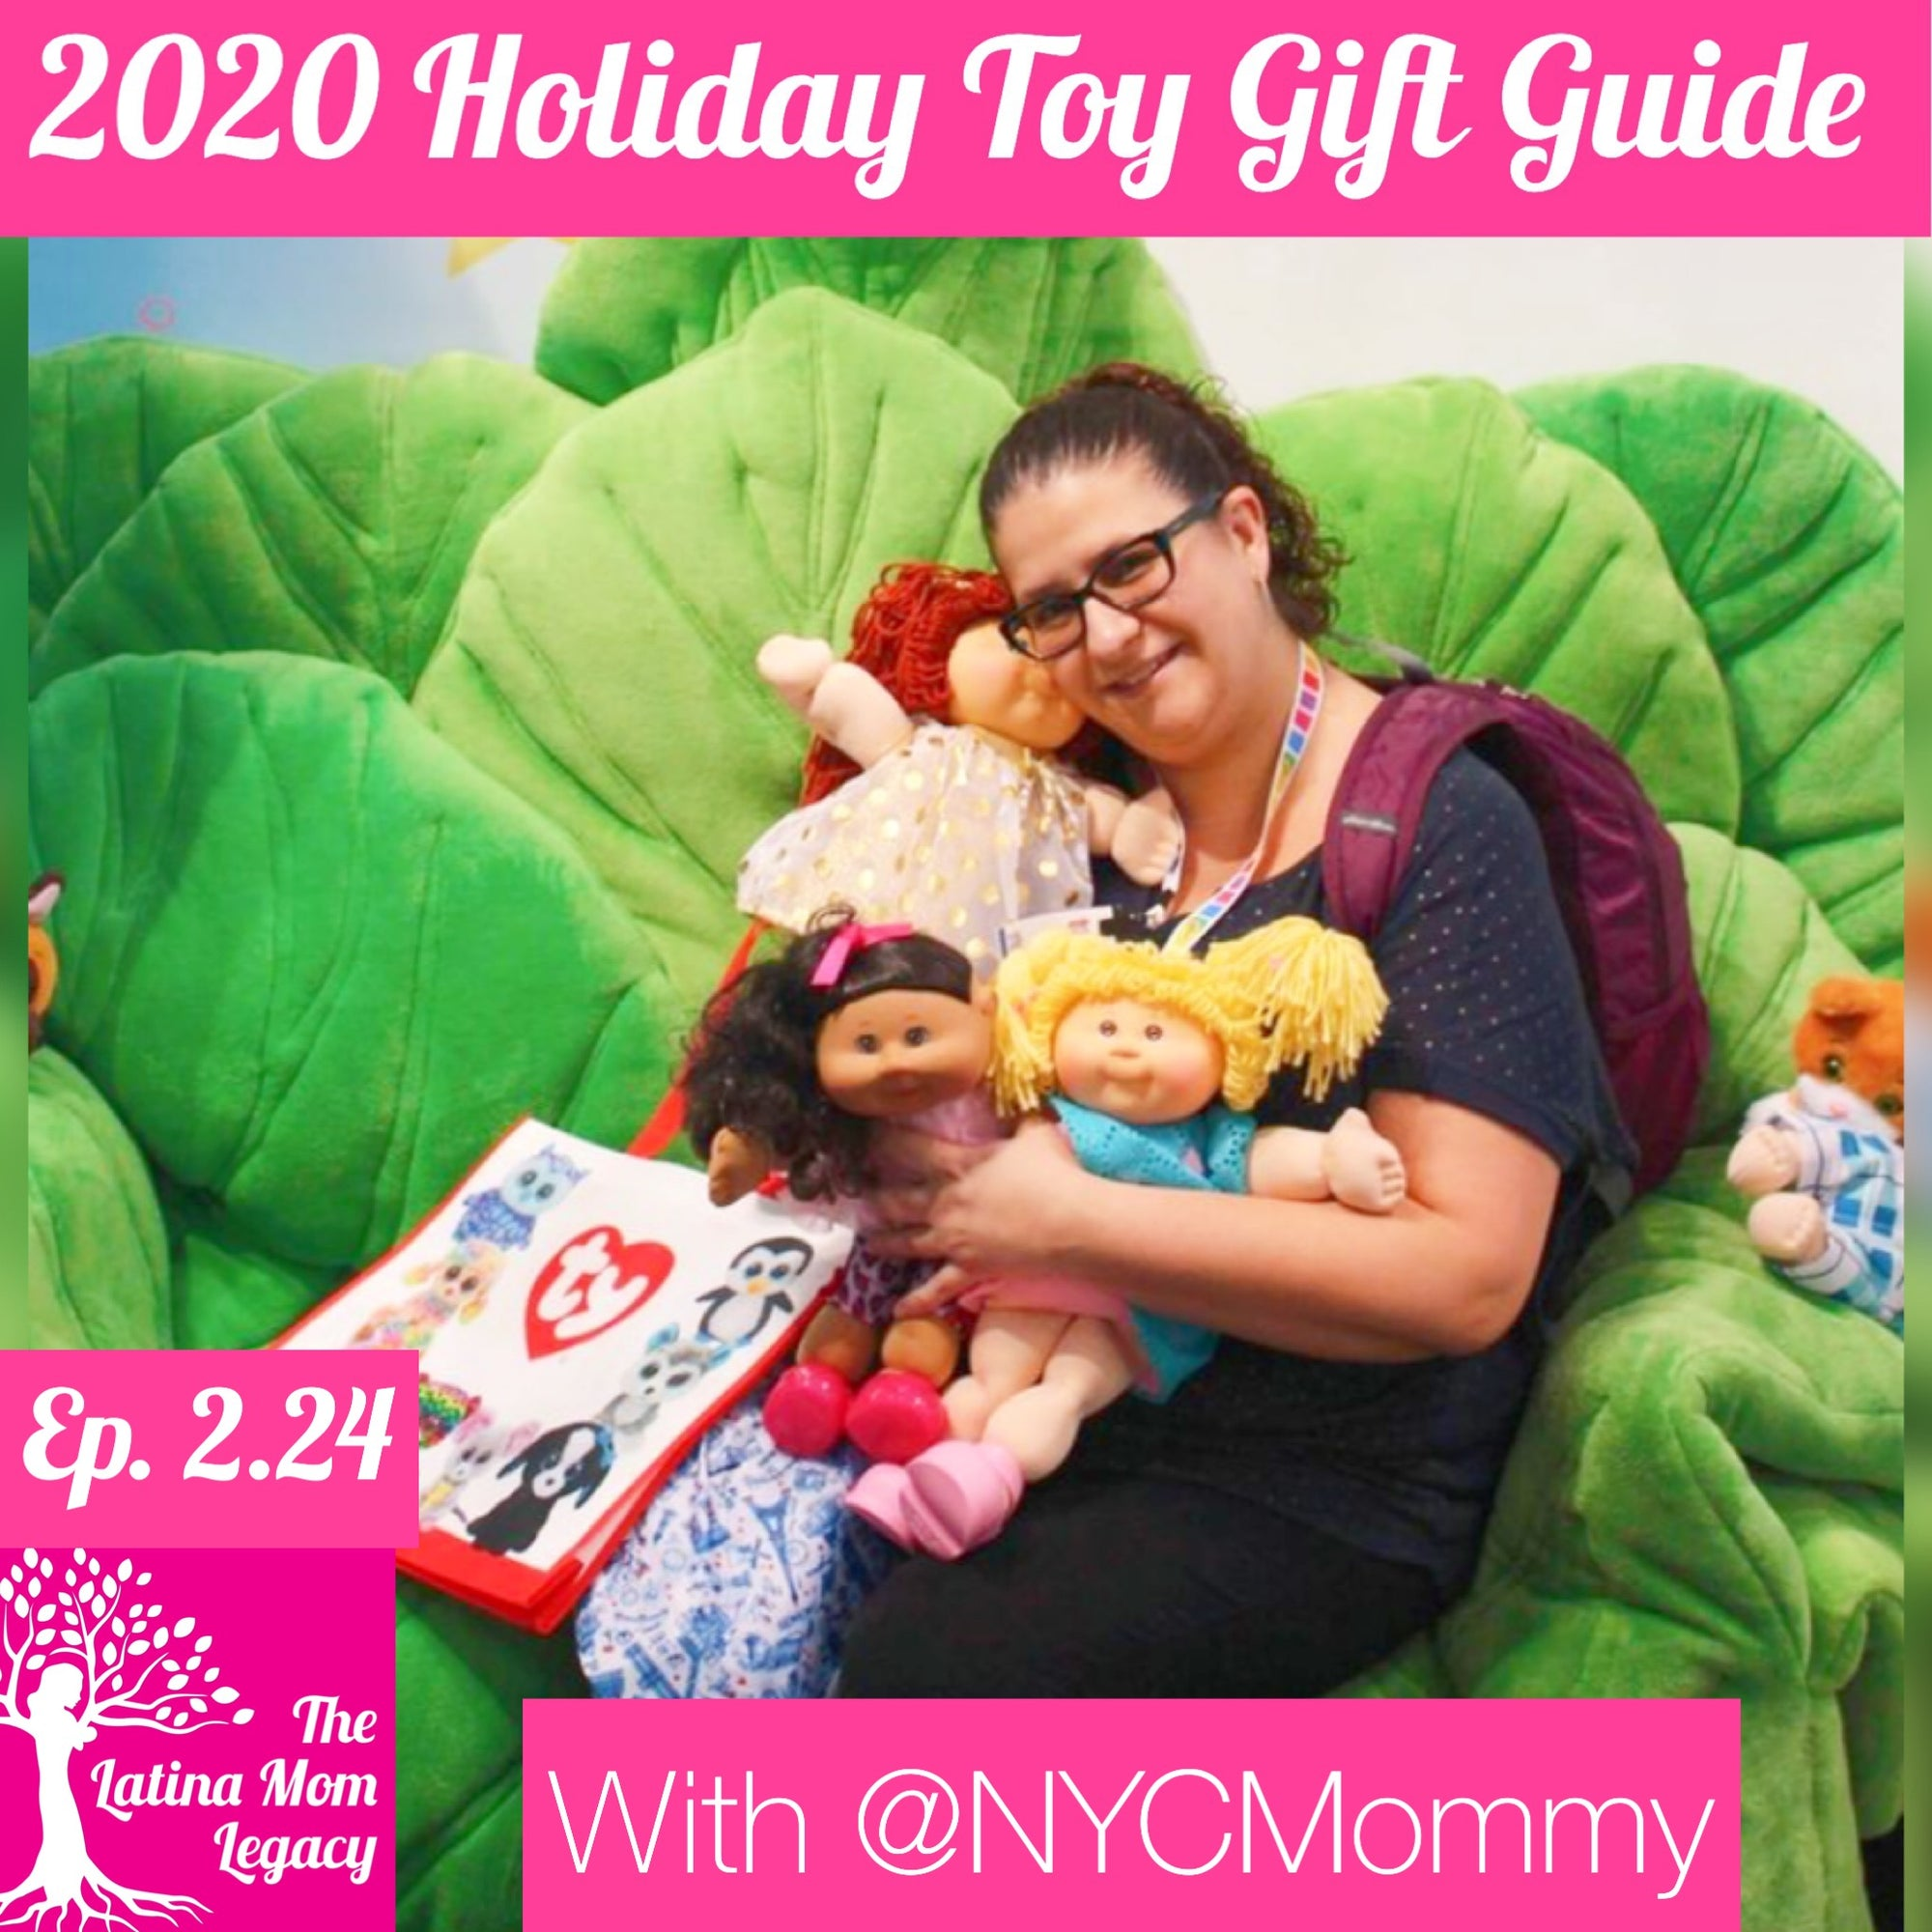 2.24 Monica Encarnación - 2020 Toy Gift Guide - What to Get Kids for Christmas in 2020??